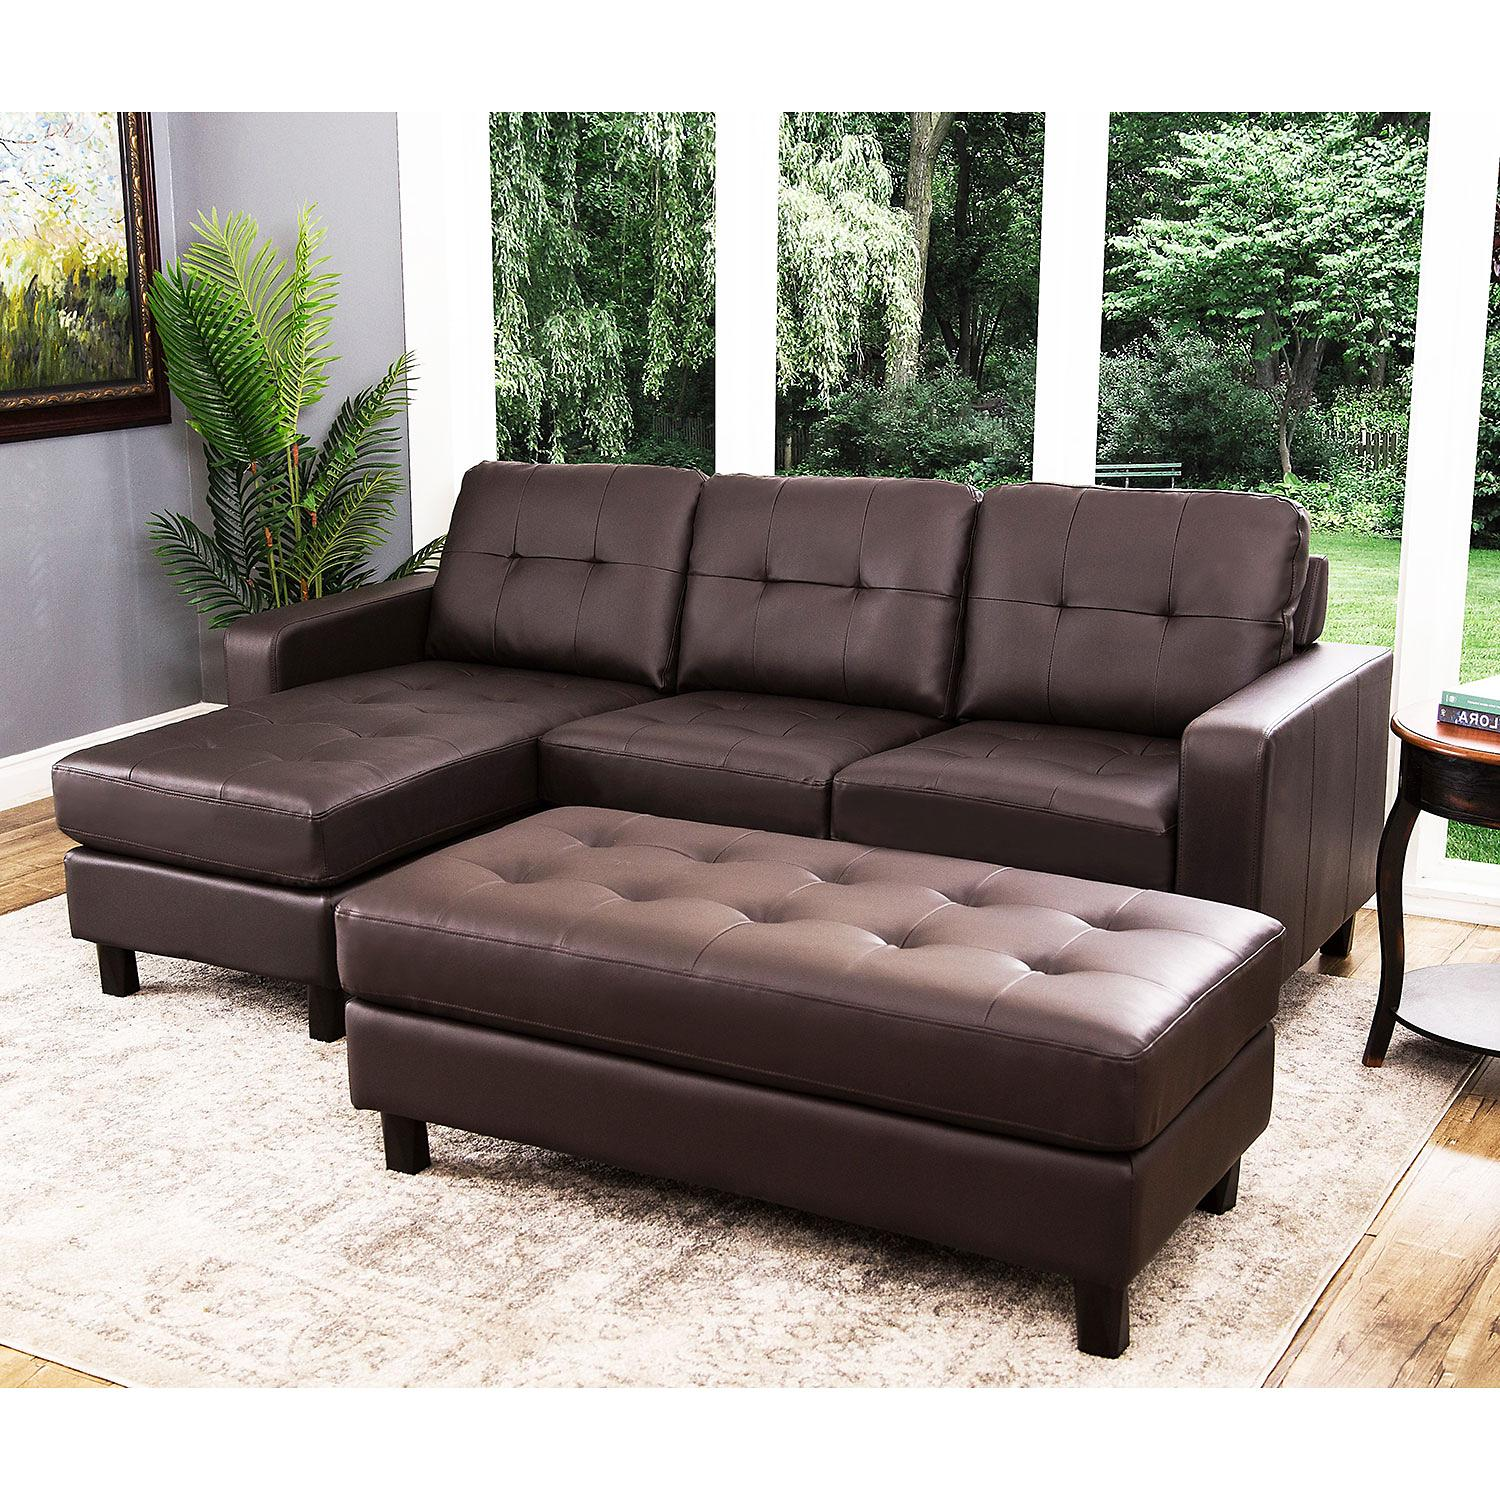 6) Sectional choice 1